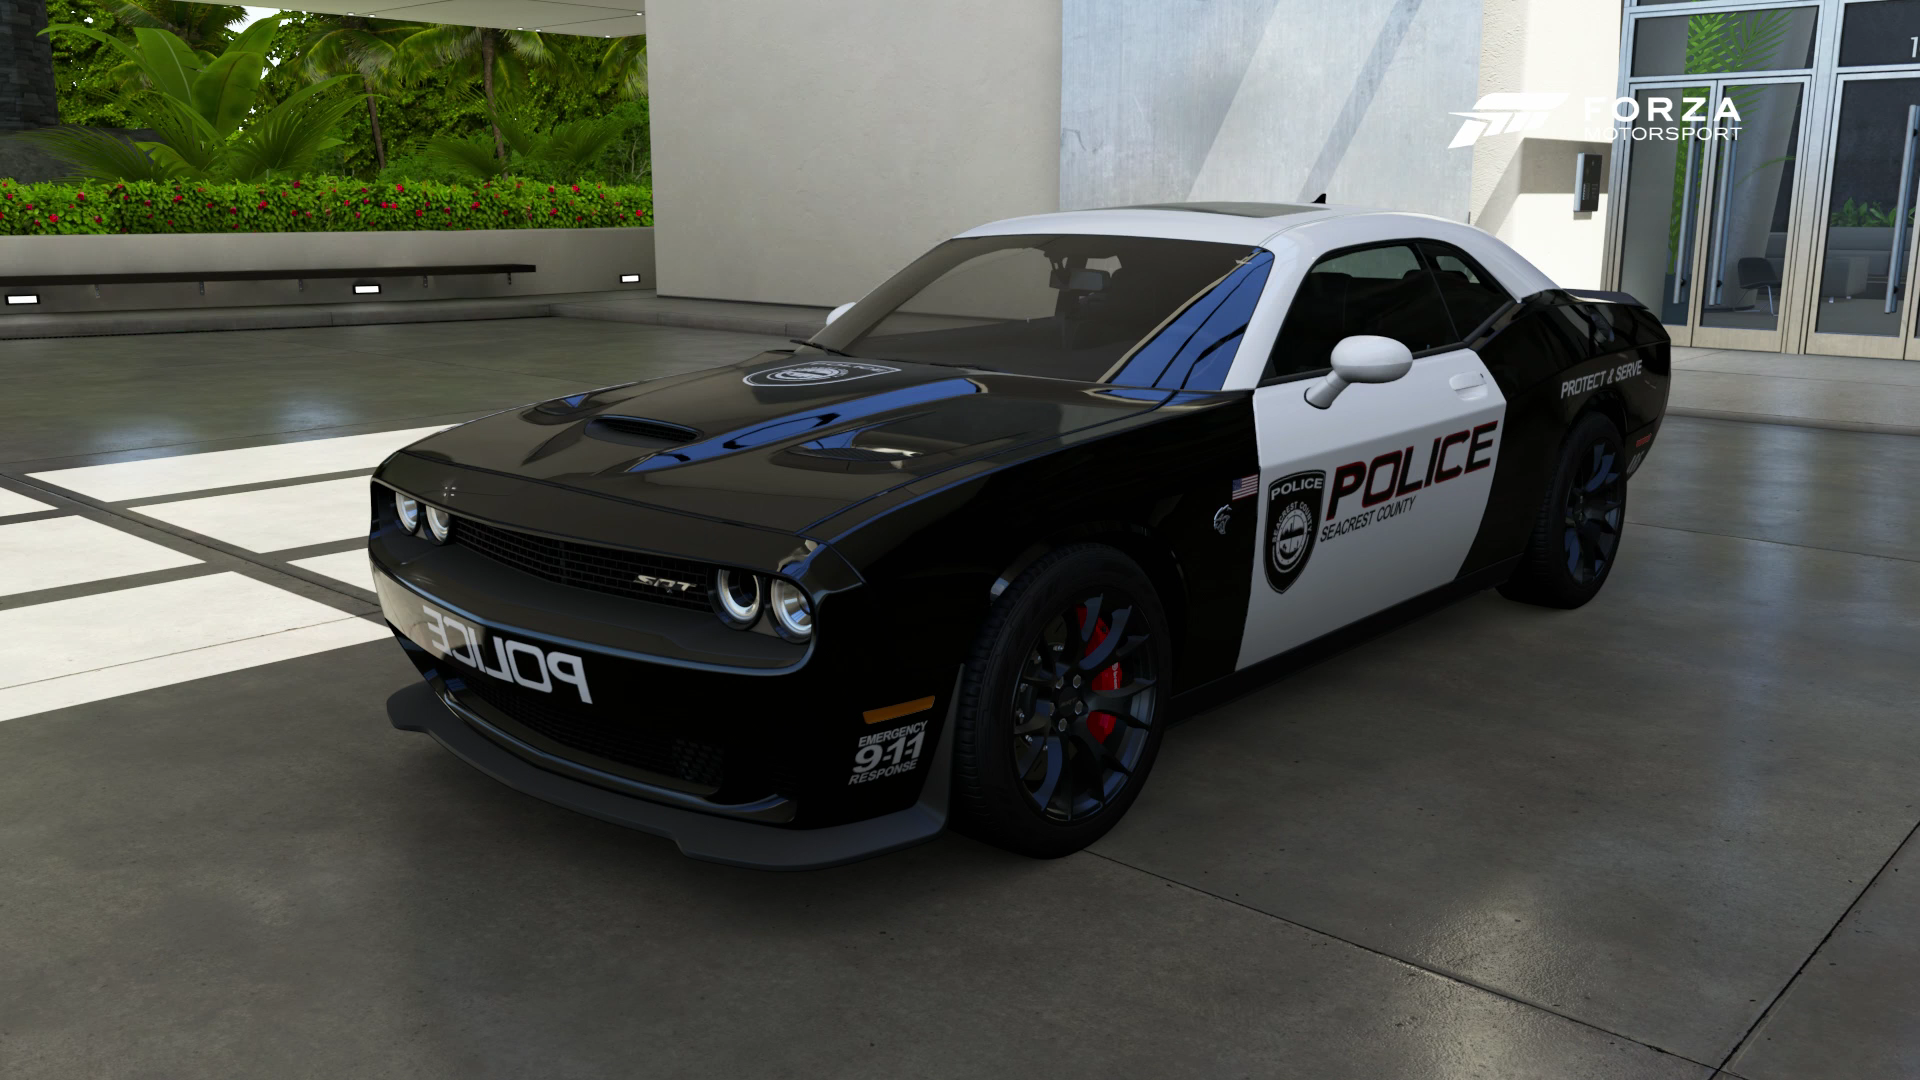 scpd police cars xboxgamer969 39 s designs paint booth forza motorsport forums. Black Bedroom Furniture Sets. Home Design Ideas